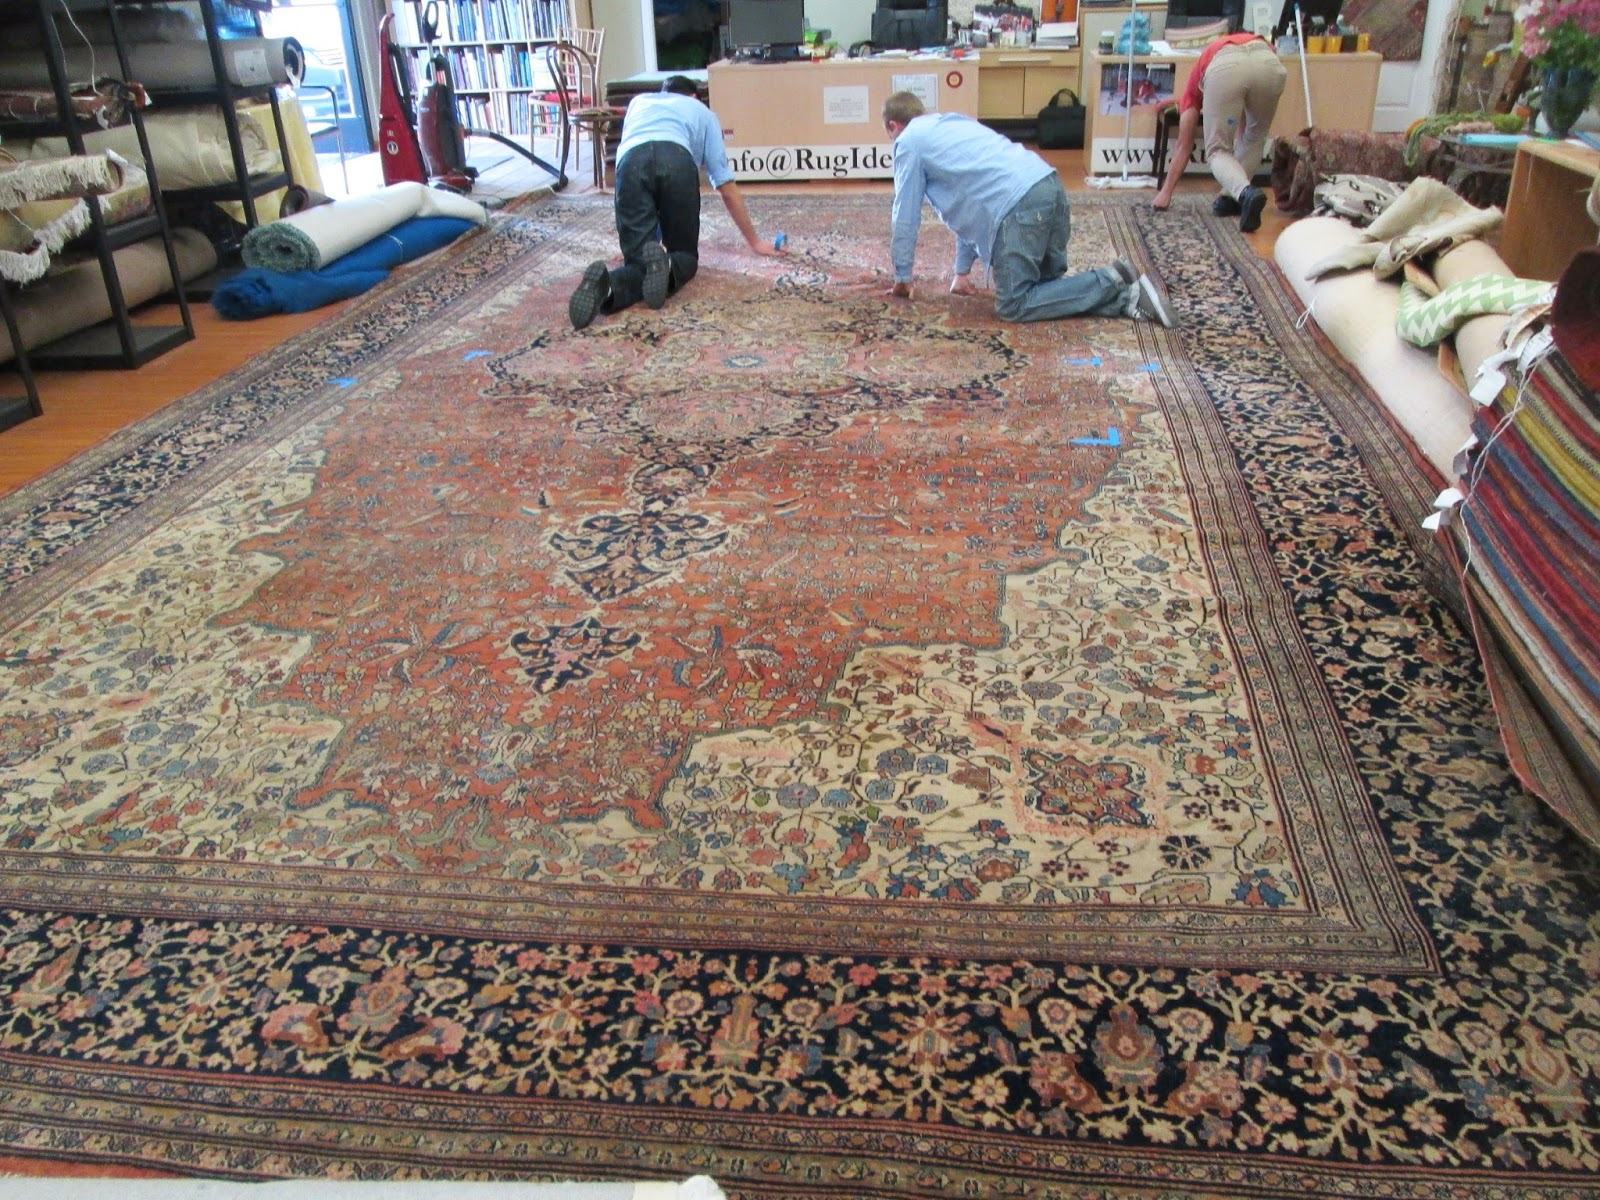 Rugs Are Difficult To Handle And Bring In So Usually We Pick Them Up From Our Clients Rather Than Dropping The Off